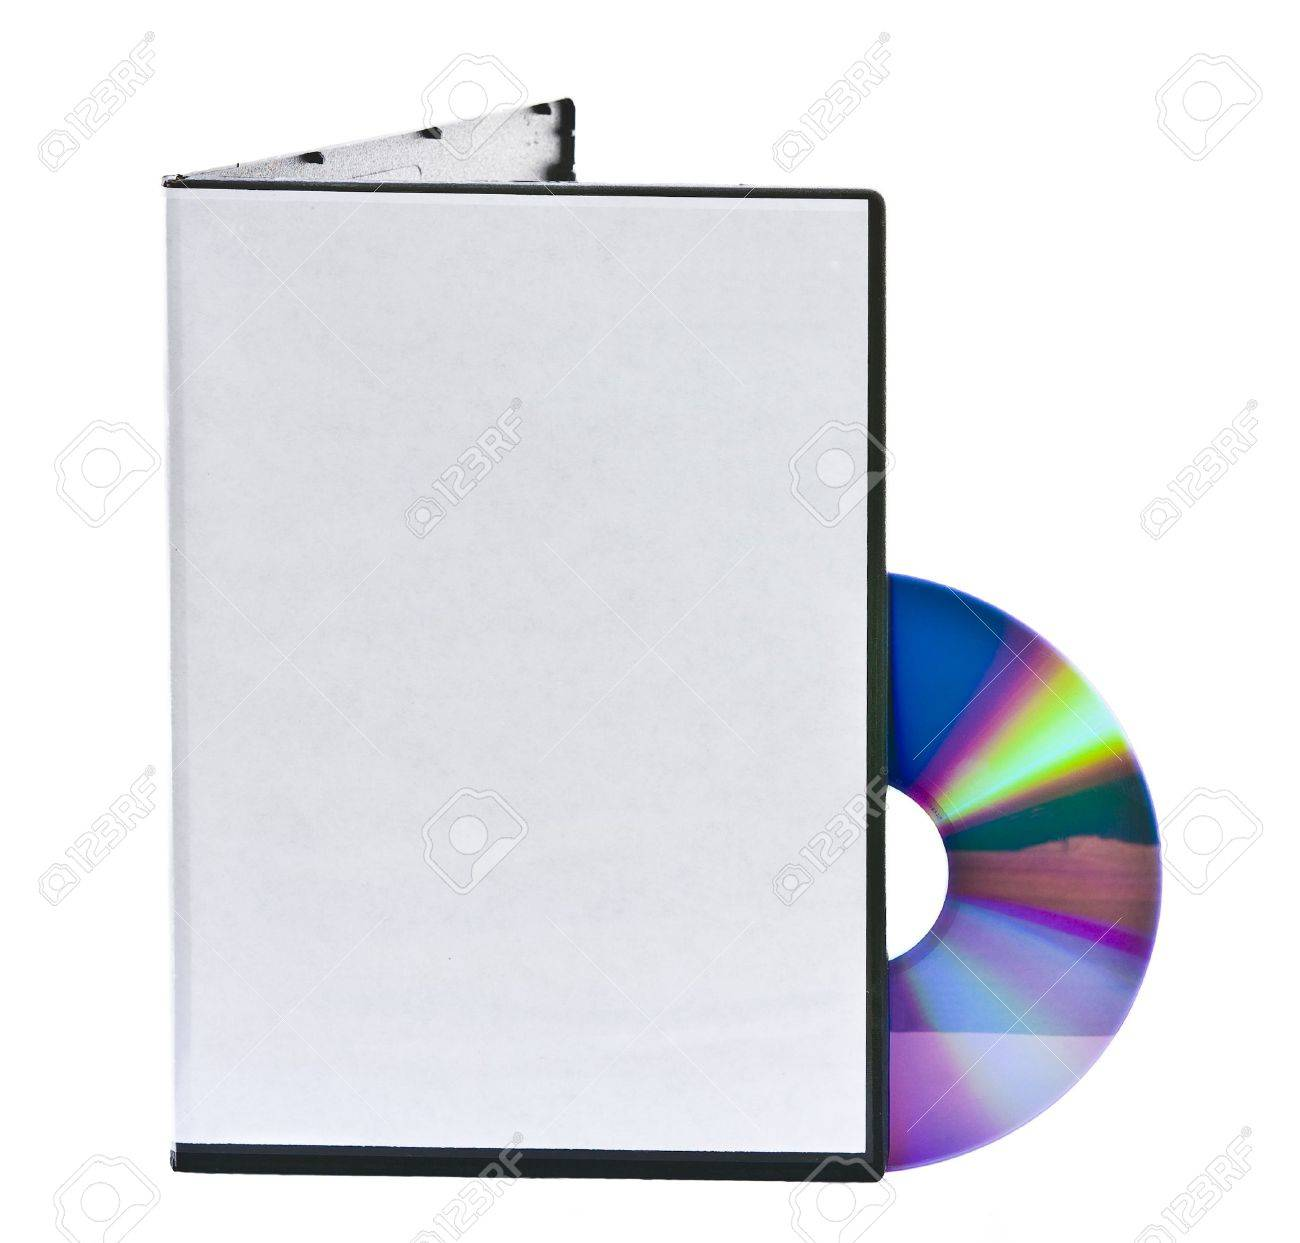 Dvd Case Stock Photos Images. Royalty Free Dvd Case Images And ...